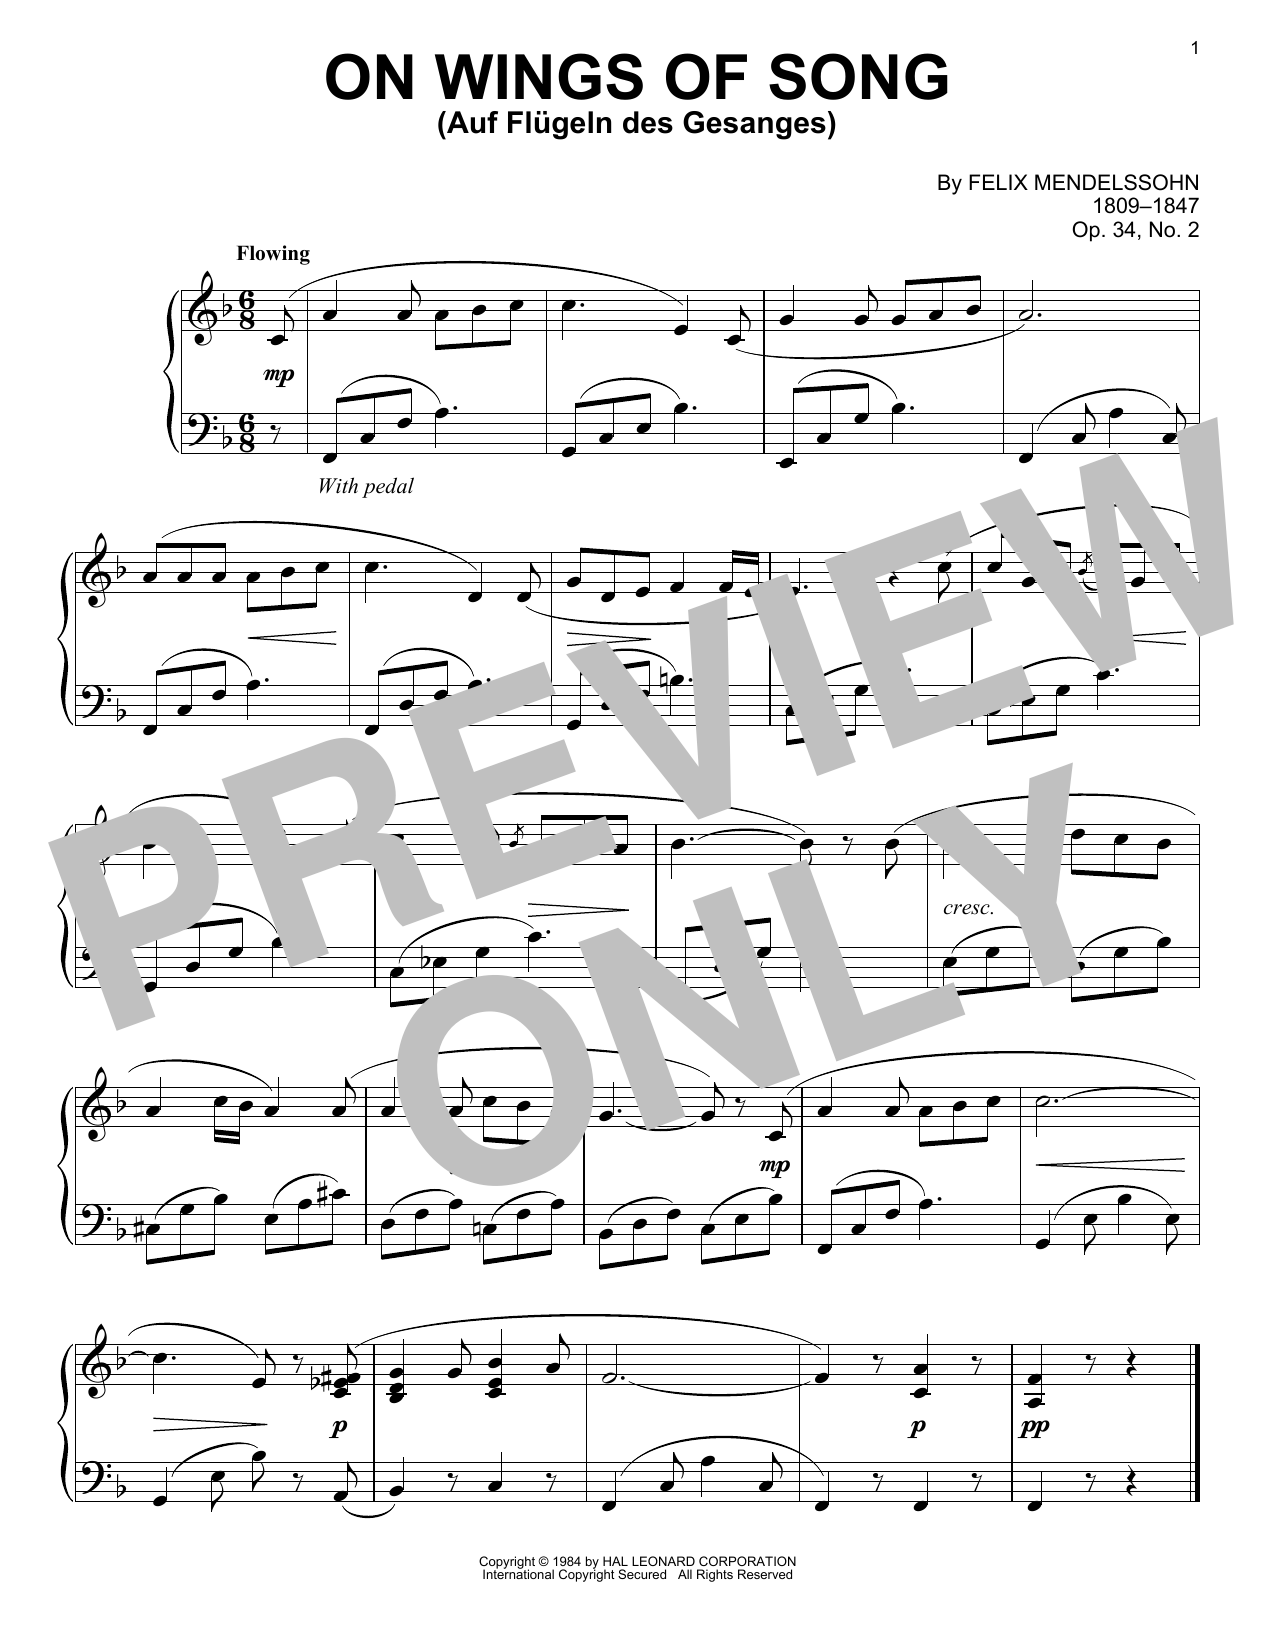 On Wings Of Song (Auf Flugeln Des Gesanges) Sheet Music